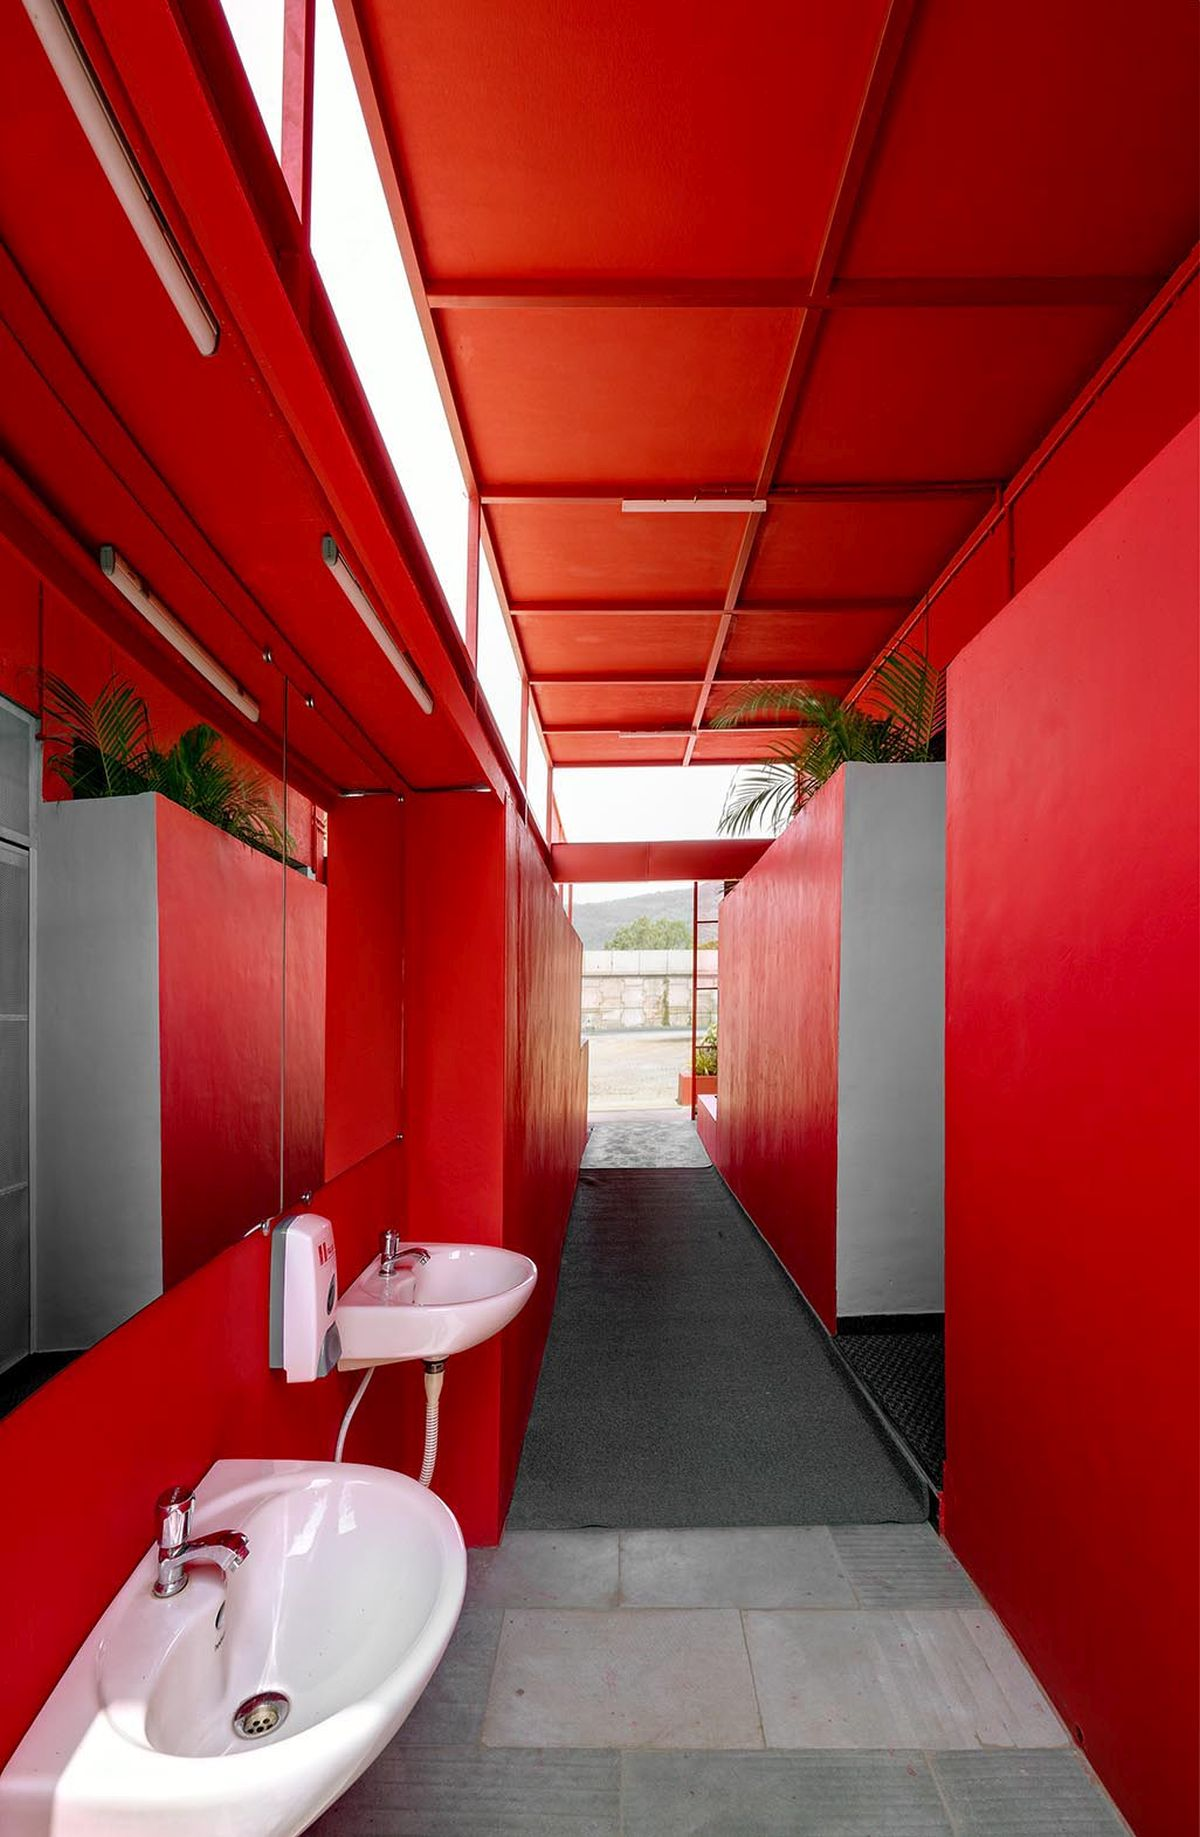 Pause - Restrooms, at Bombay-Goa Highway, by RC Architects 27